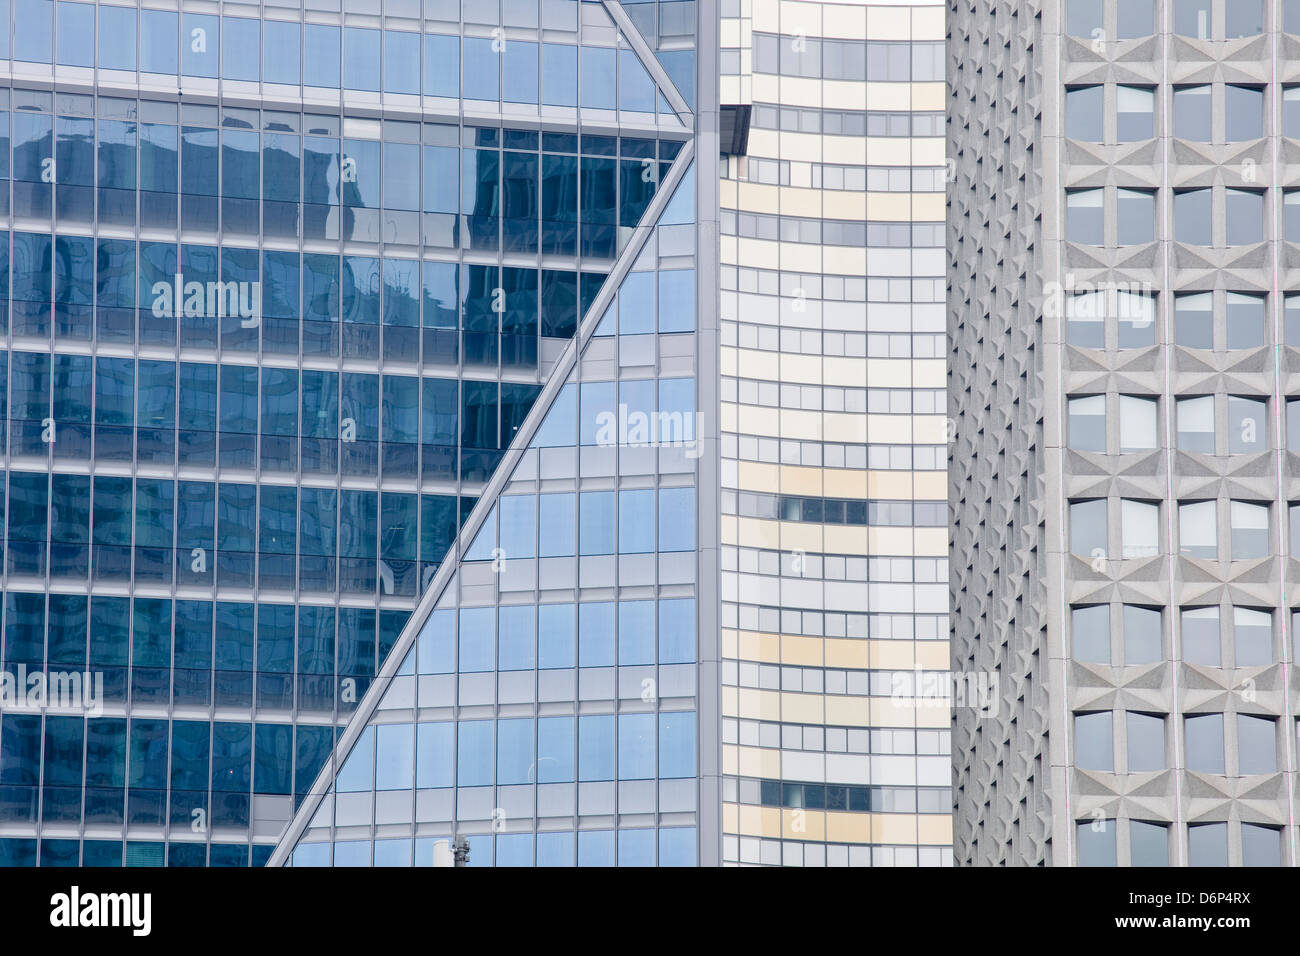 Abstract of buildings in the La Defense district, Paris, France, Europe Stock Photo